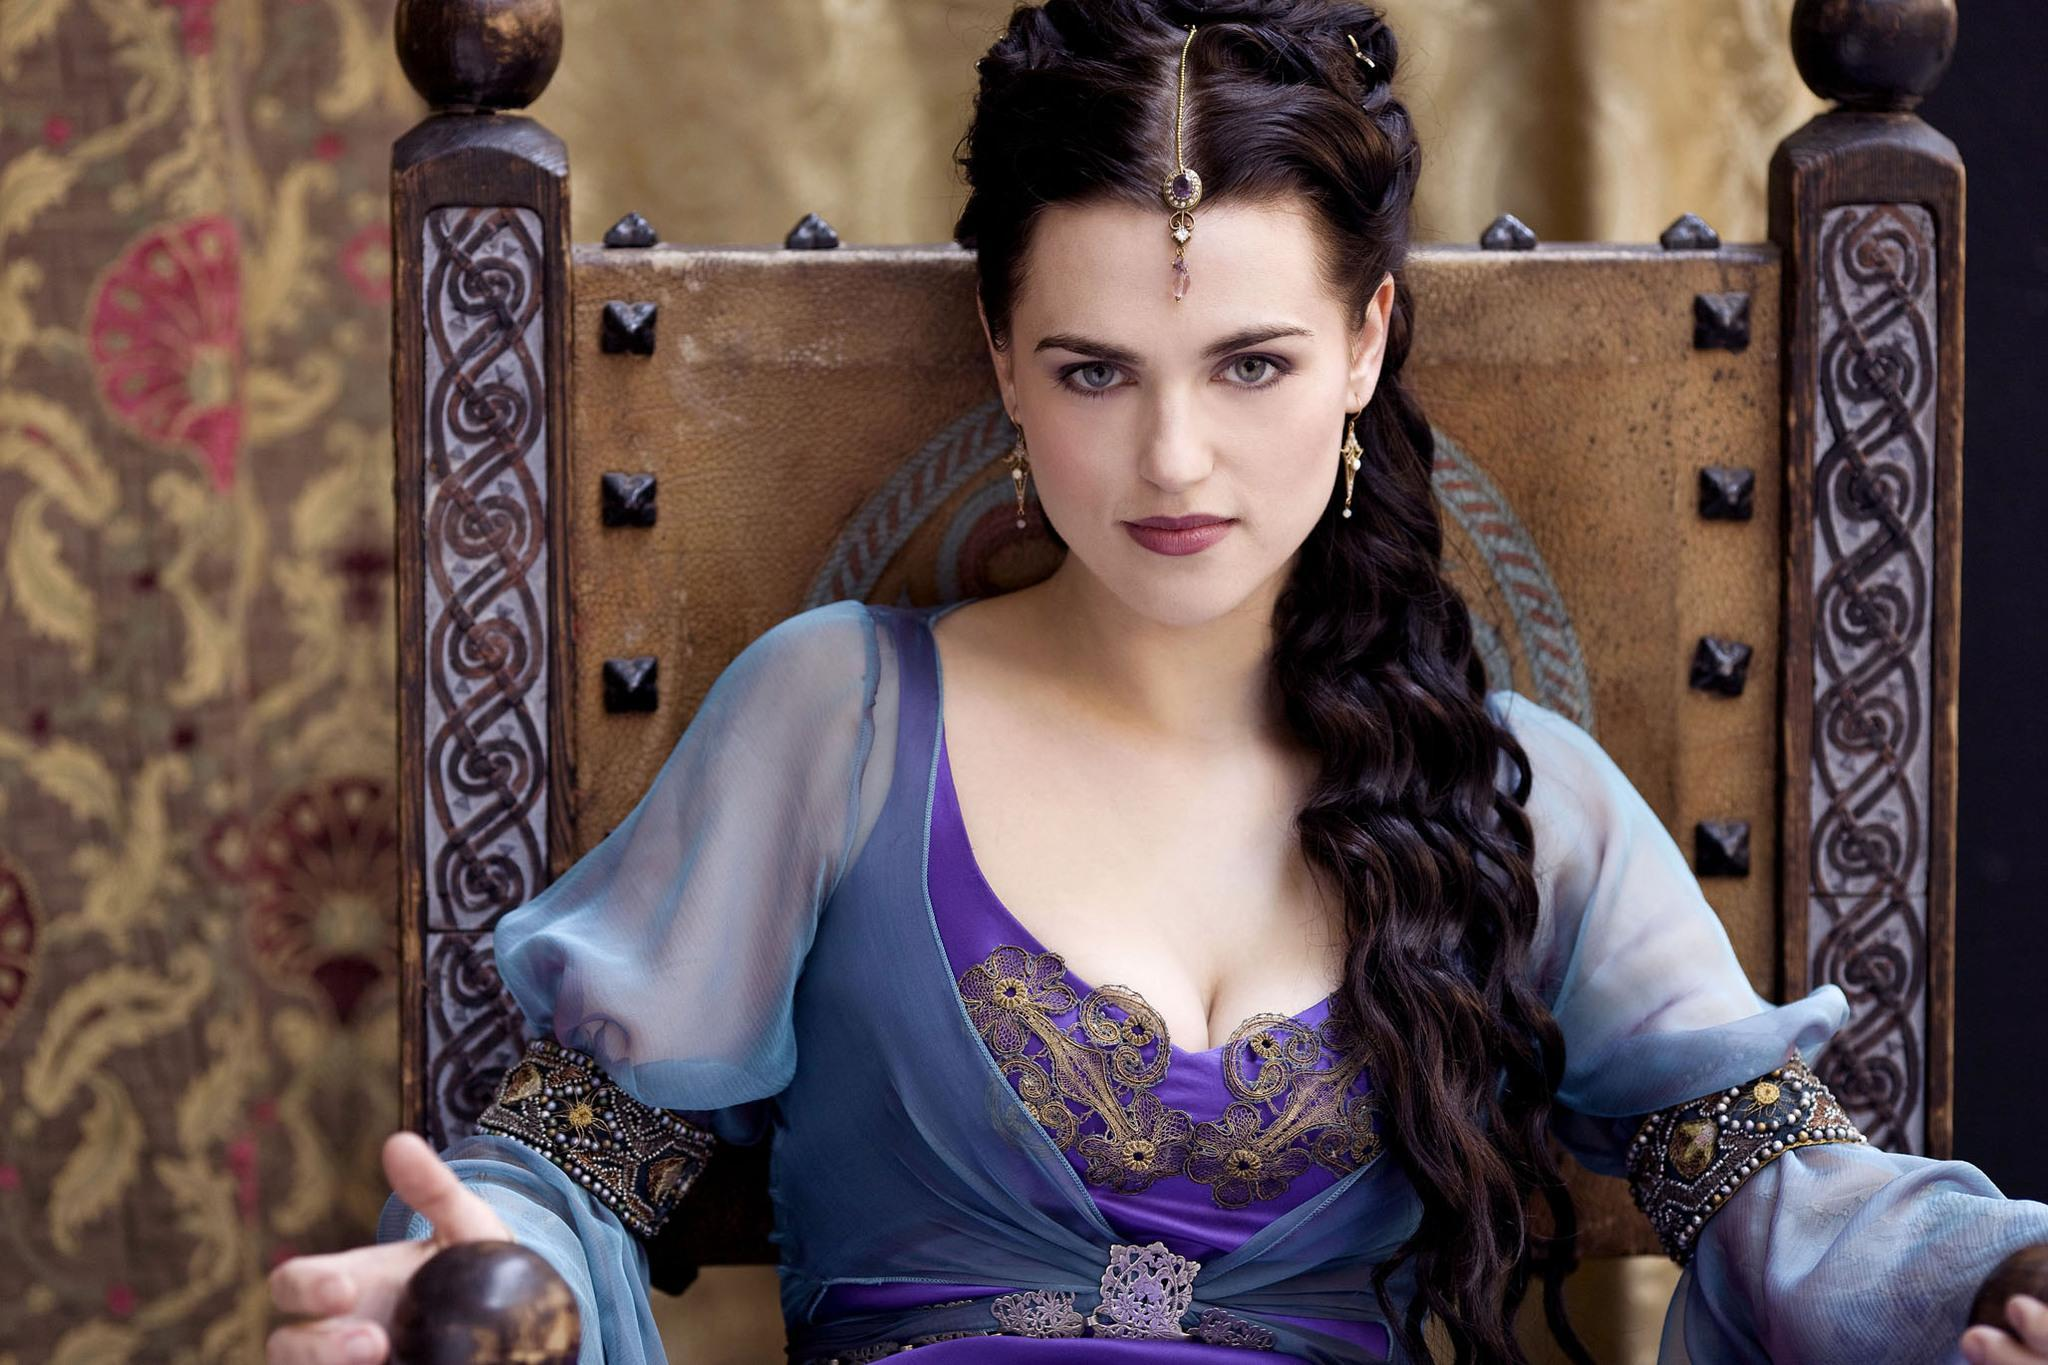 What is the title of the episode that Morgana finds she has magical powers?